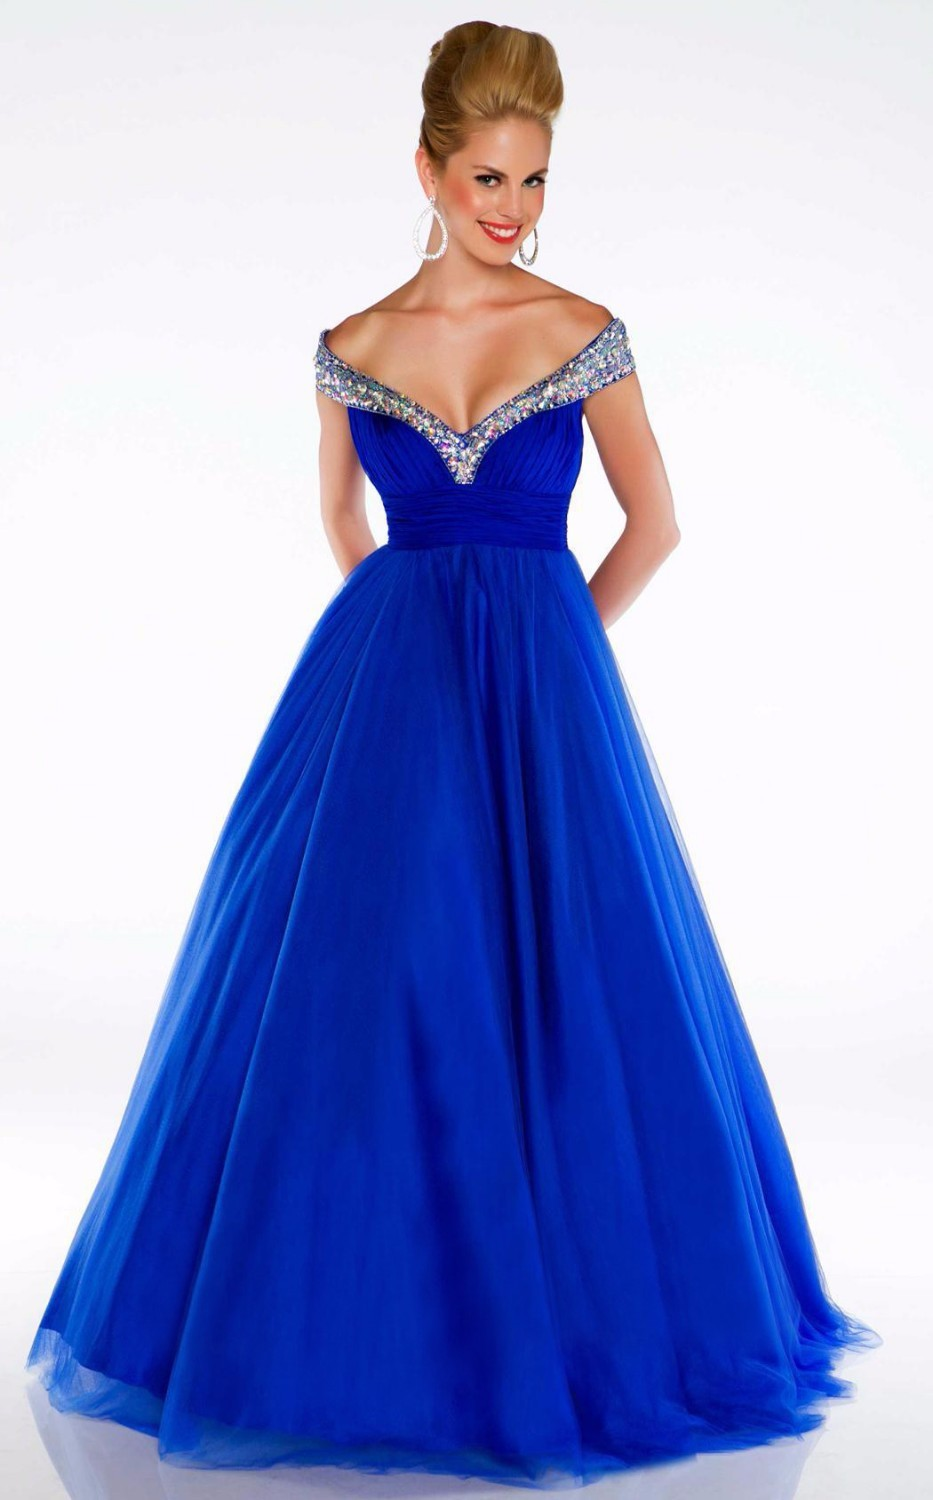 New-Arrival-2014-Sexy-Royal-Blue-Red-White-V-neck-A-Line-Modest-Evening-Pageant-Dresses